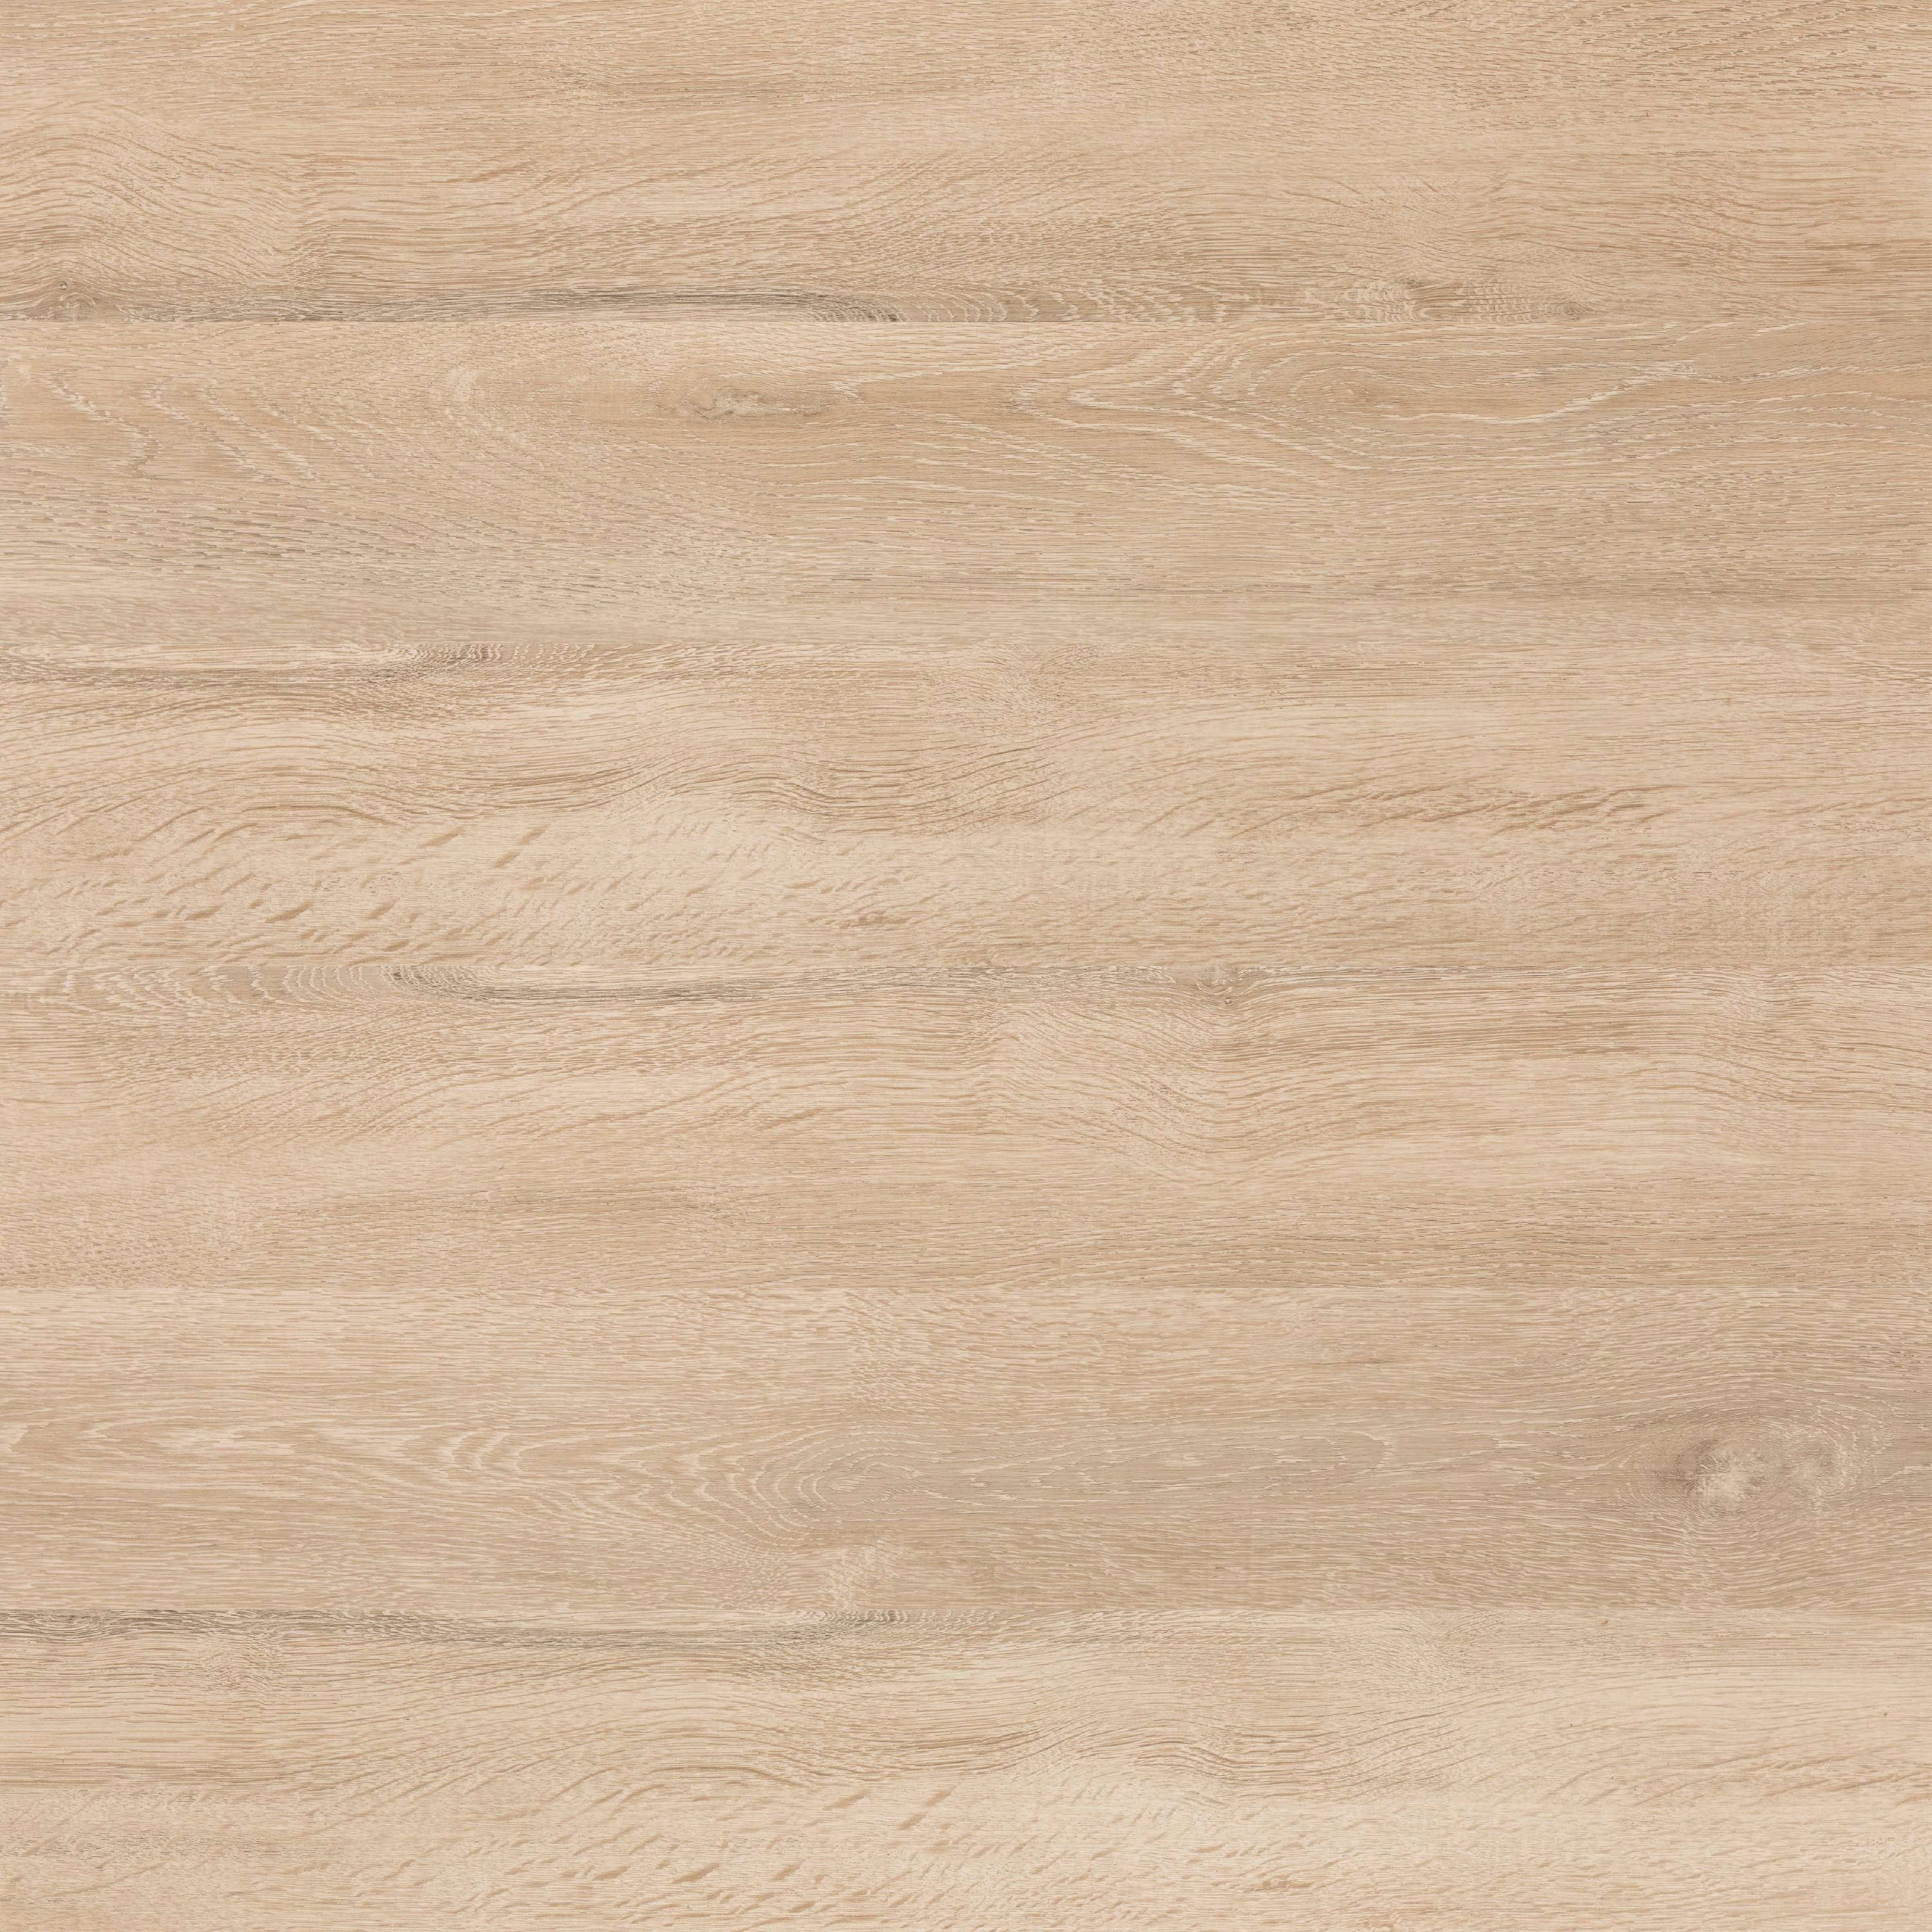 Urban Surfaces Main Street: 8106 Drift Wood 24-planks 6-in x 36-in Luxury Vinyl Glue Down Plank (36 sq. ft. / case)